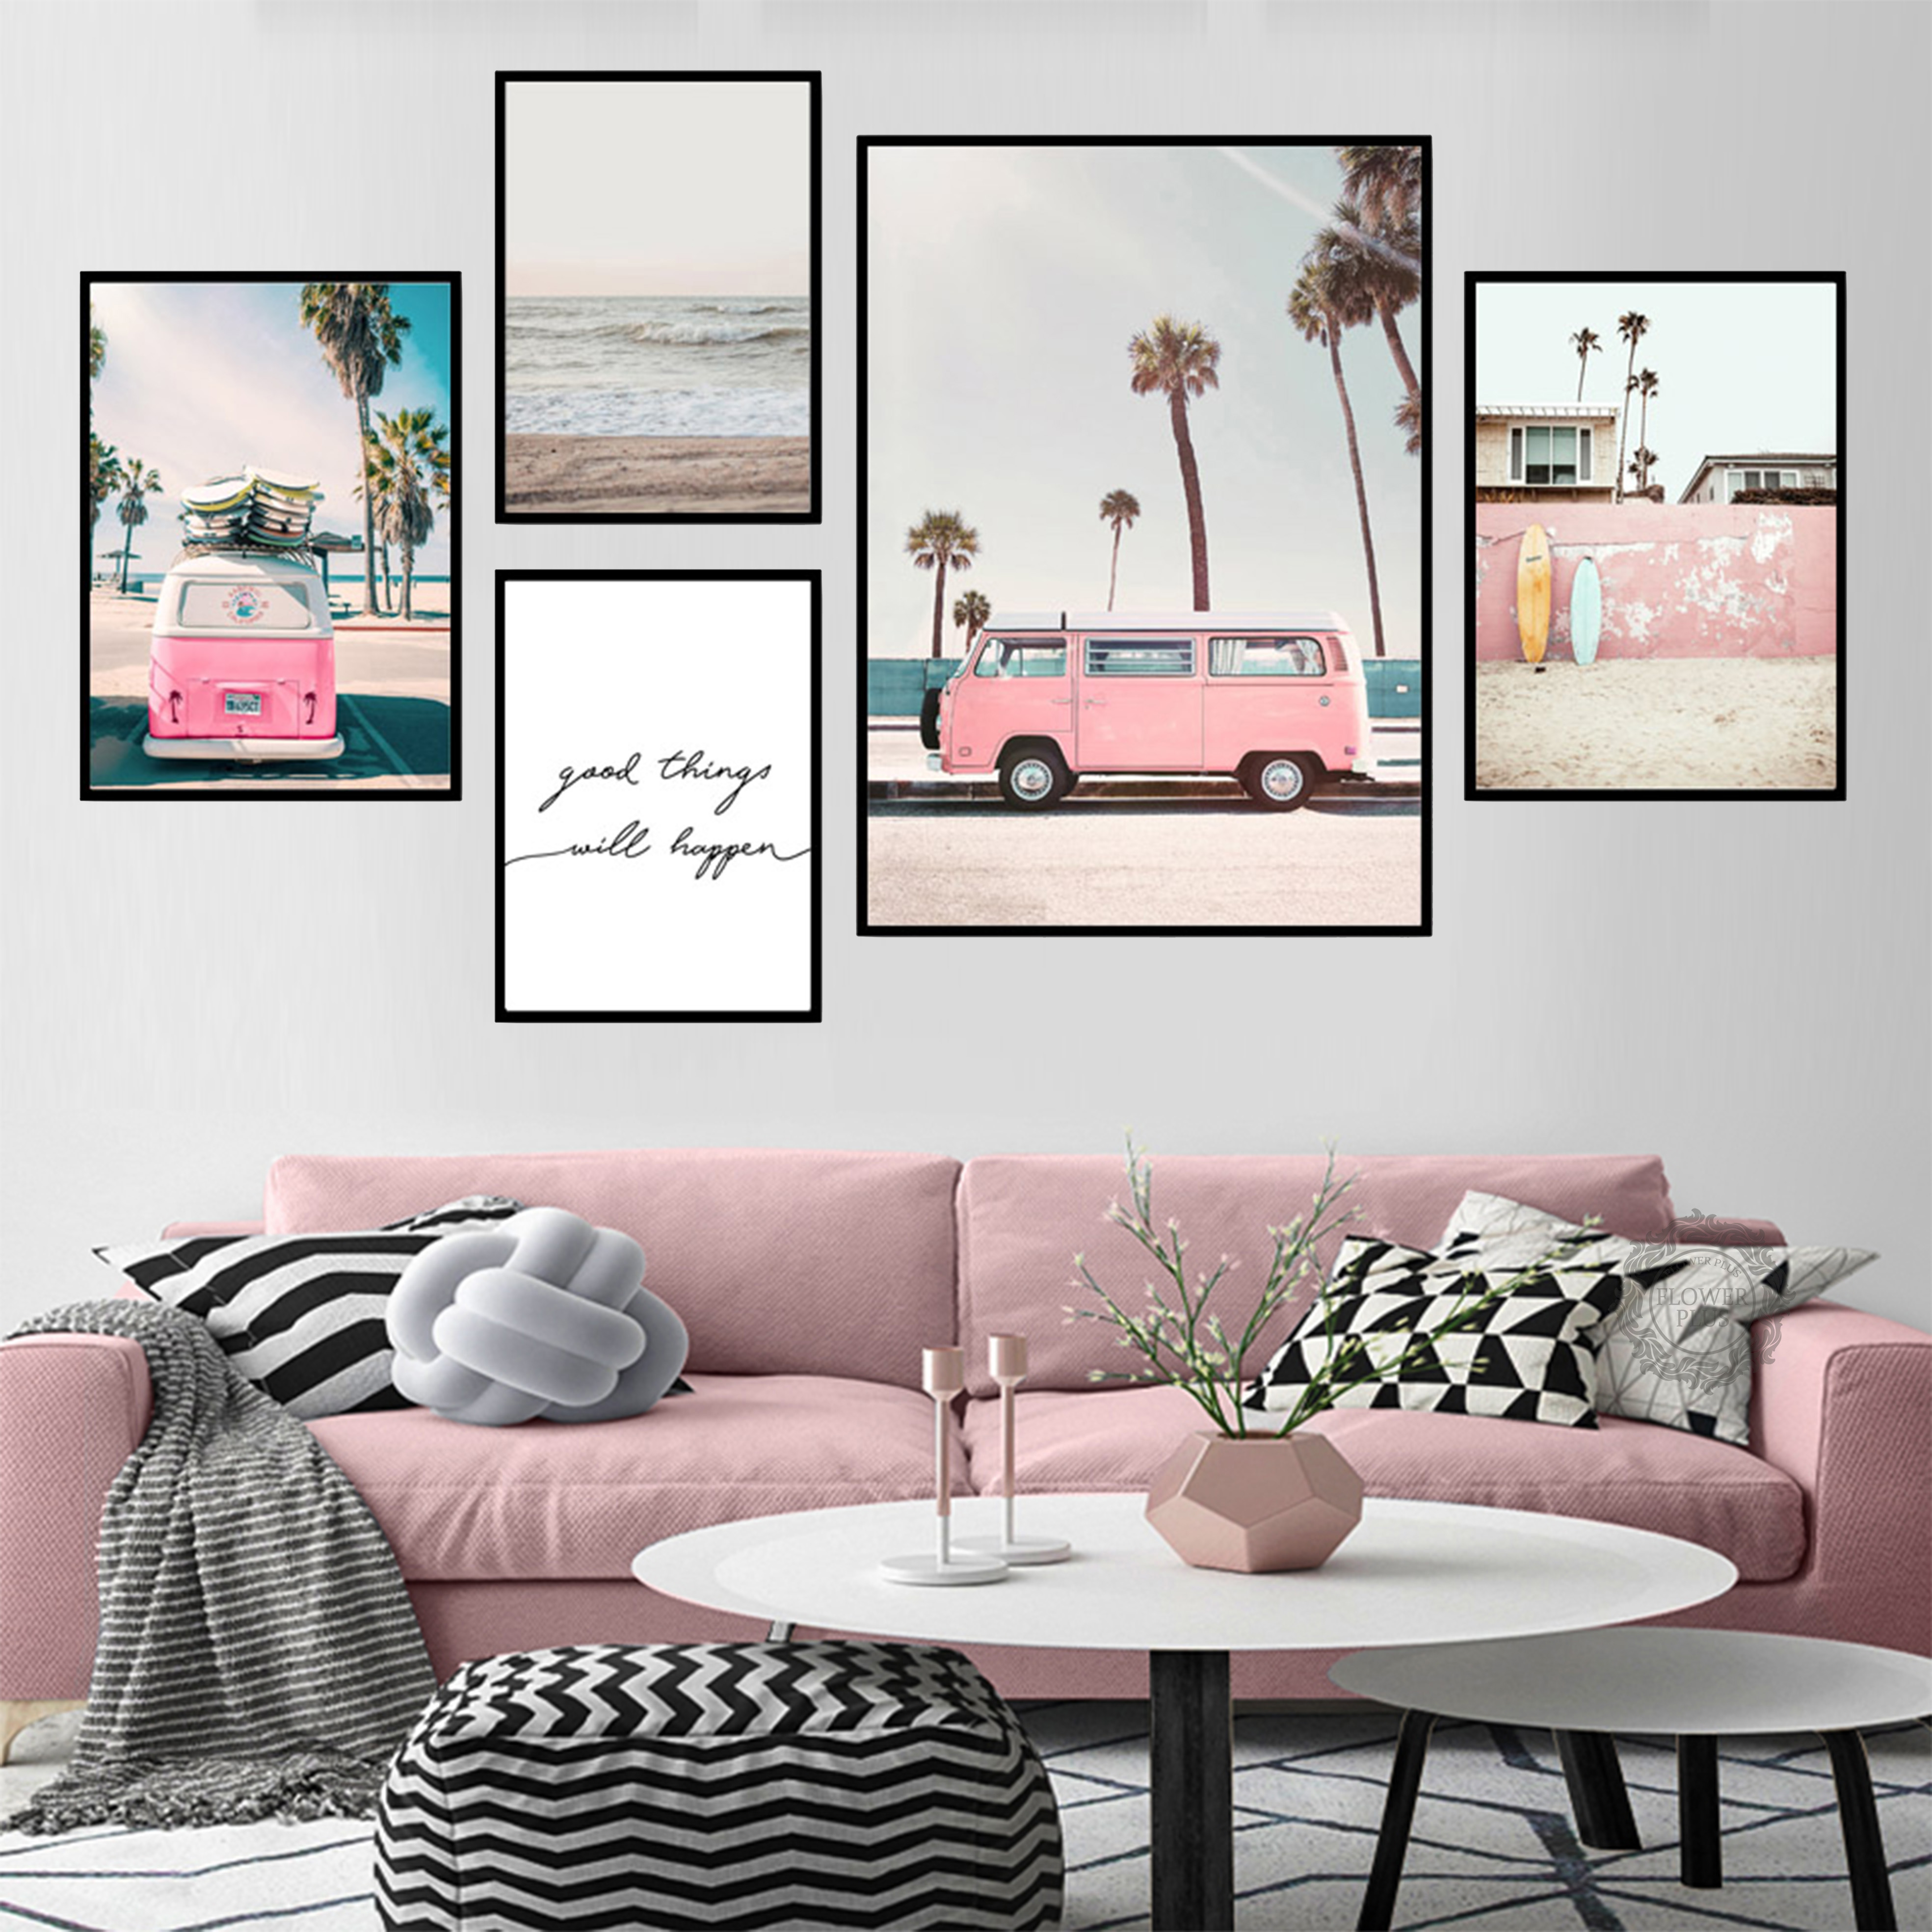 Bus Sky Sea Beach Nordic Posters For Living Room Wall Art Coconut Palm Canvas